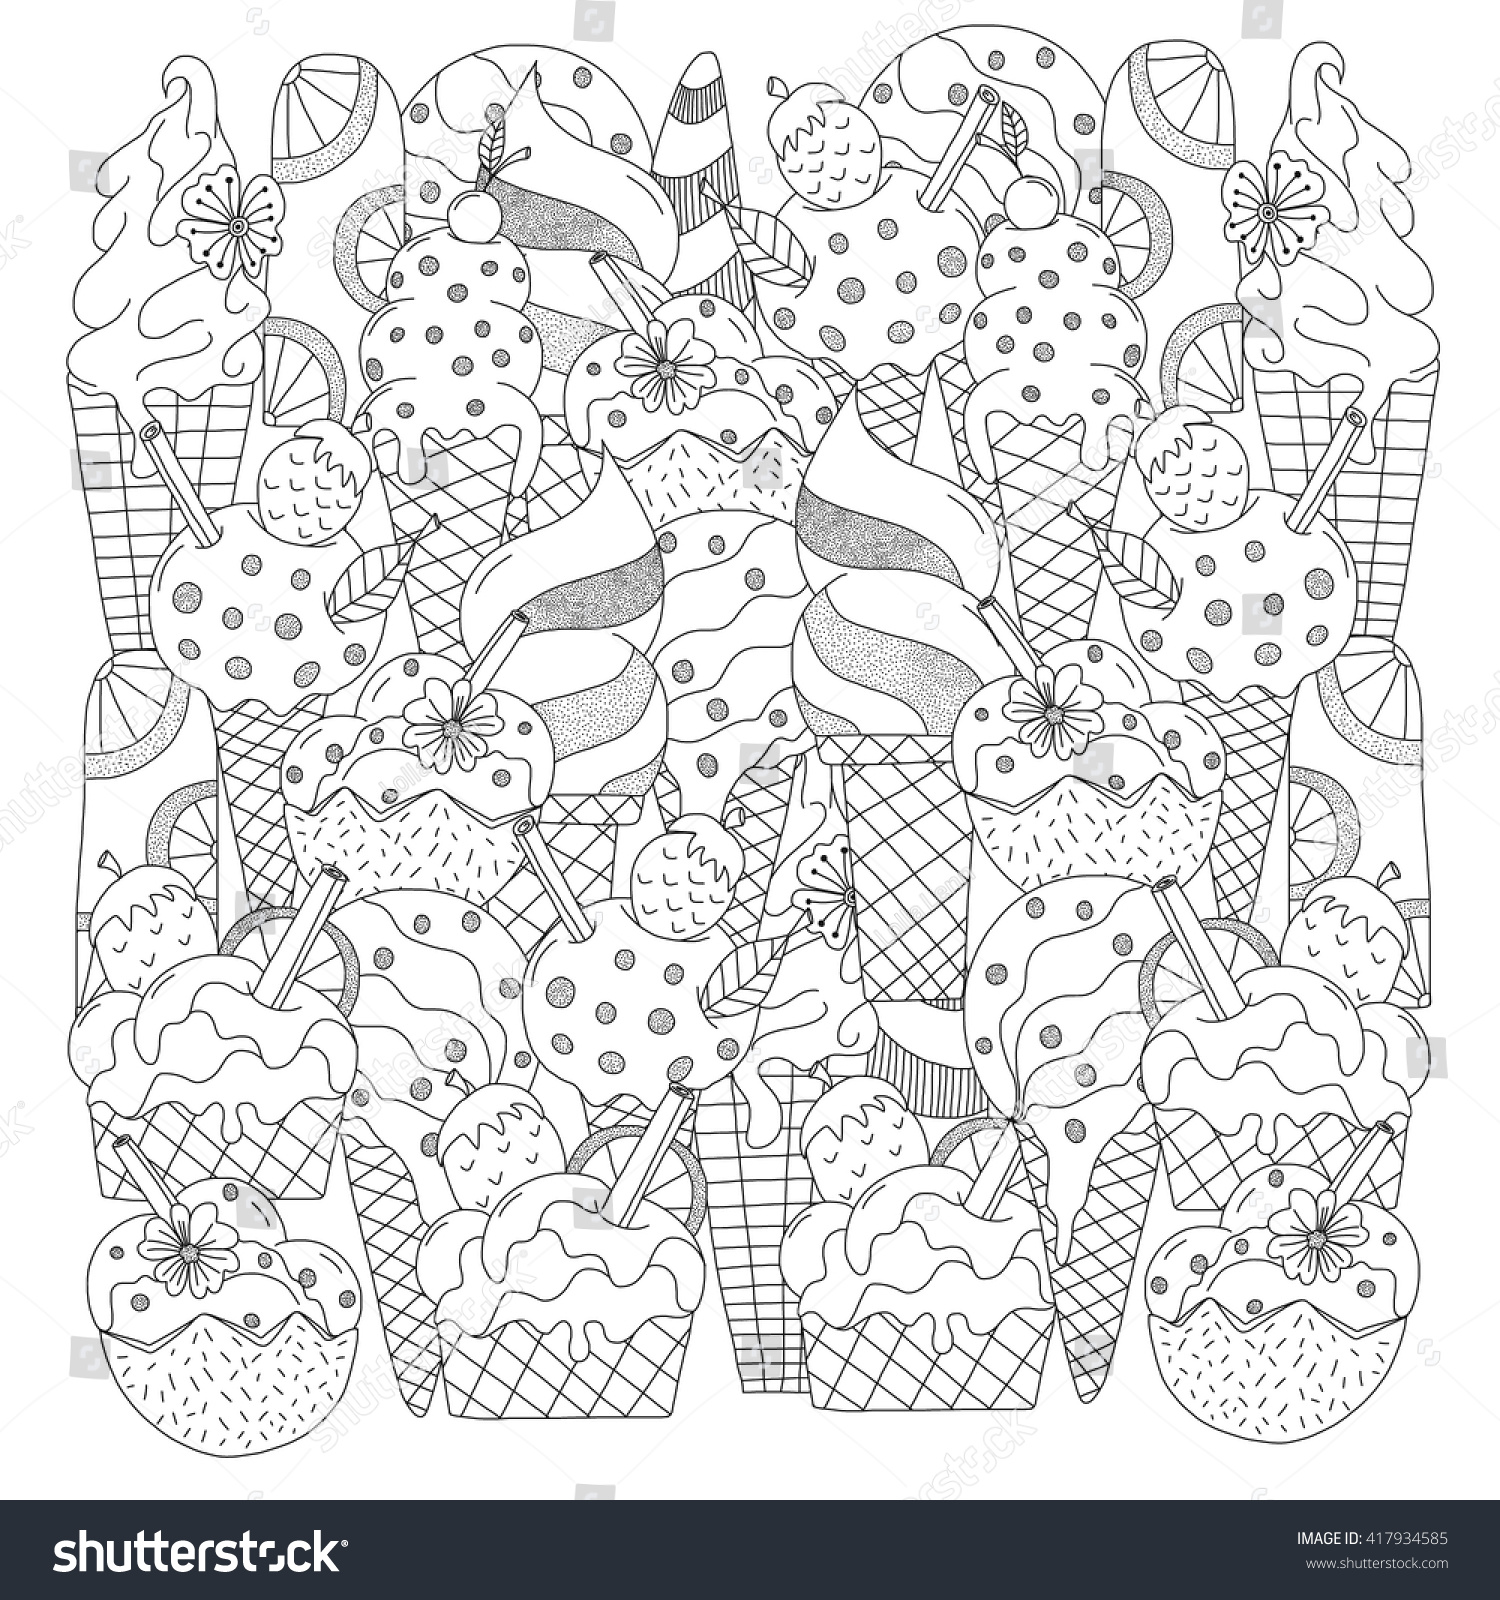 Ice cream coloring book pages - Ice Cream Hand Drawn Ethnic Patterned In Doodle Zentangle Style Coloring Book Page